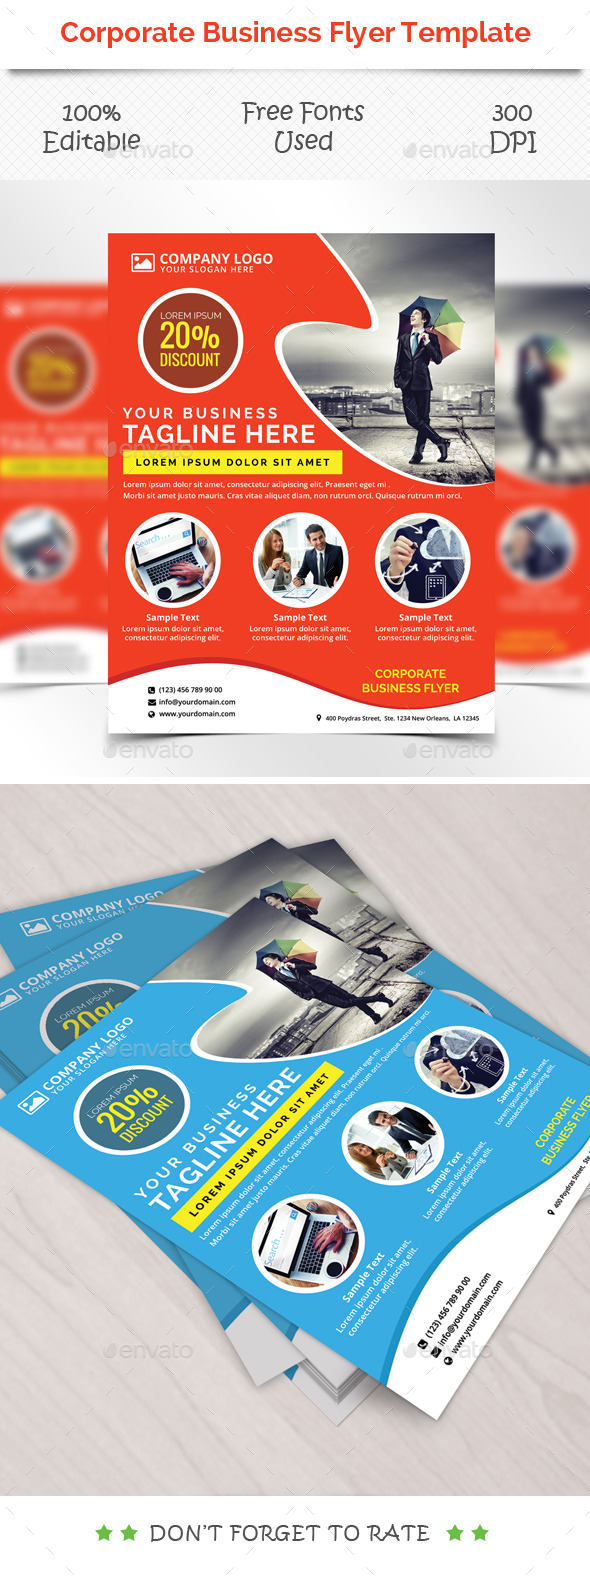 Corporate Flyer Template V 4 - Corporate Flyers